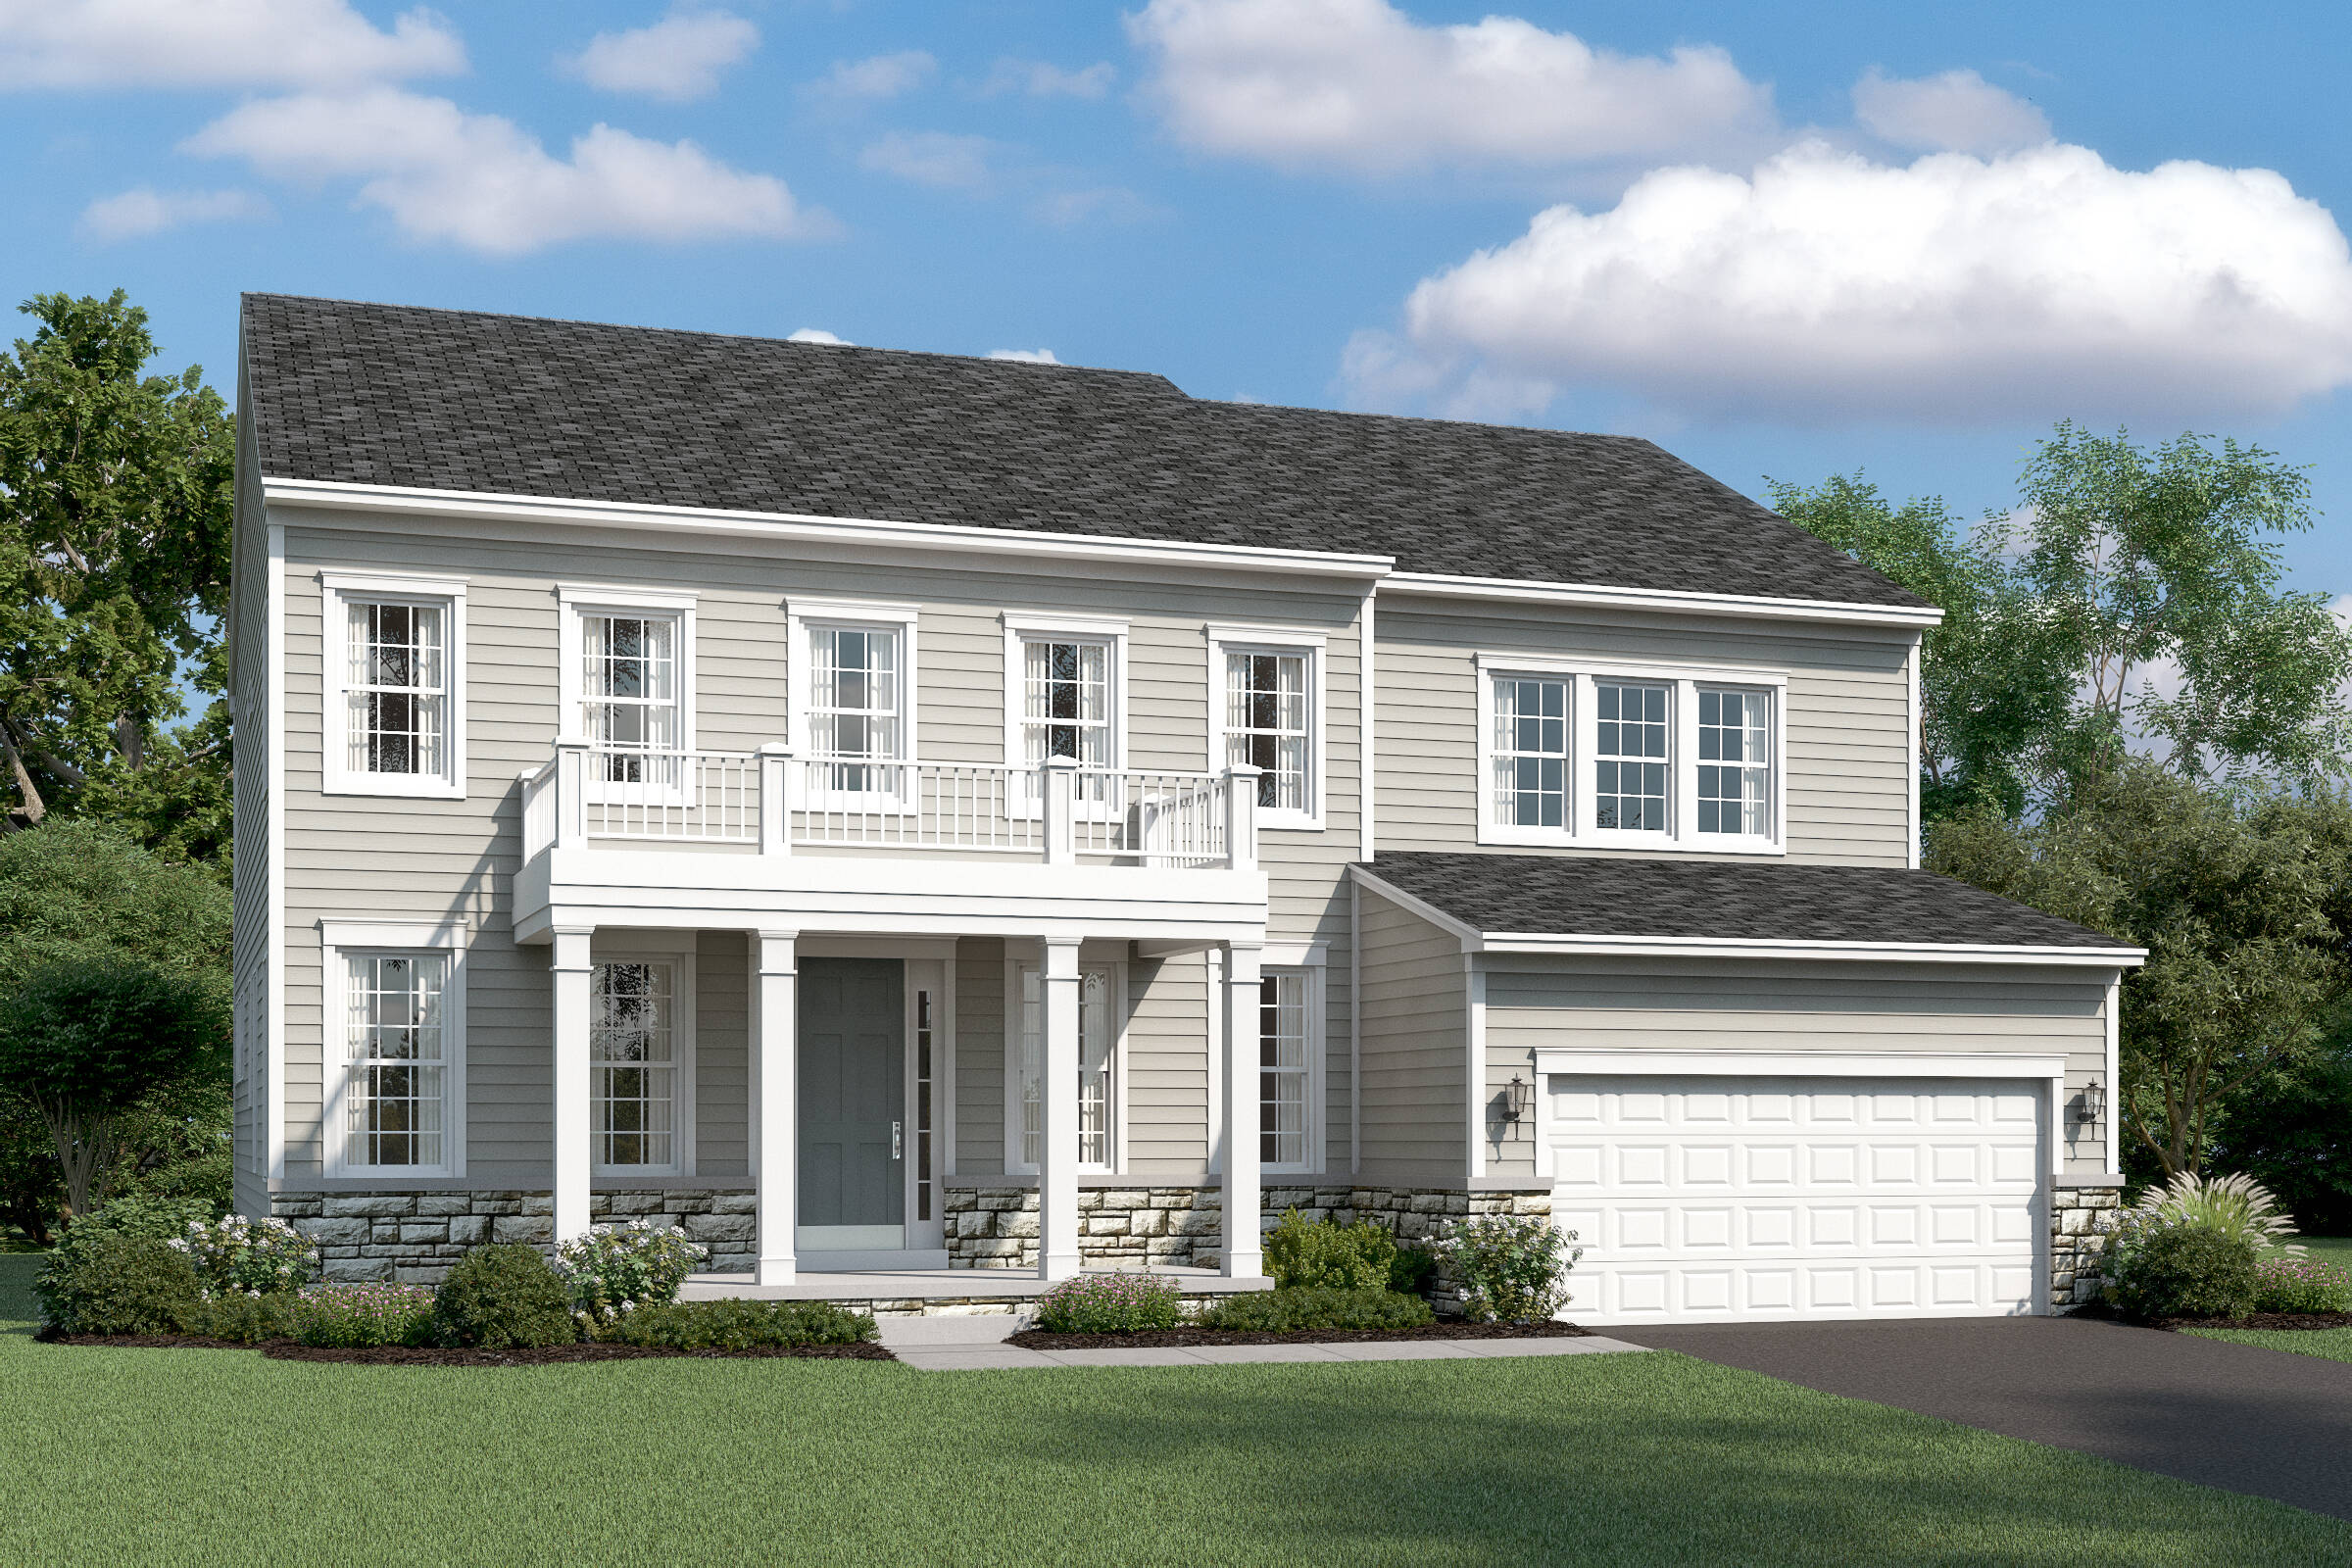 potomac d new homes at nicholson farm